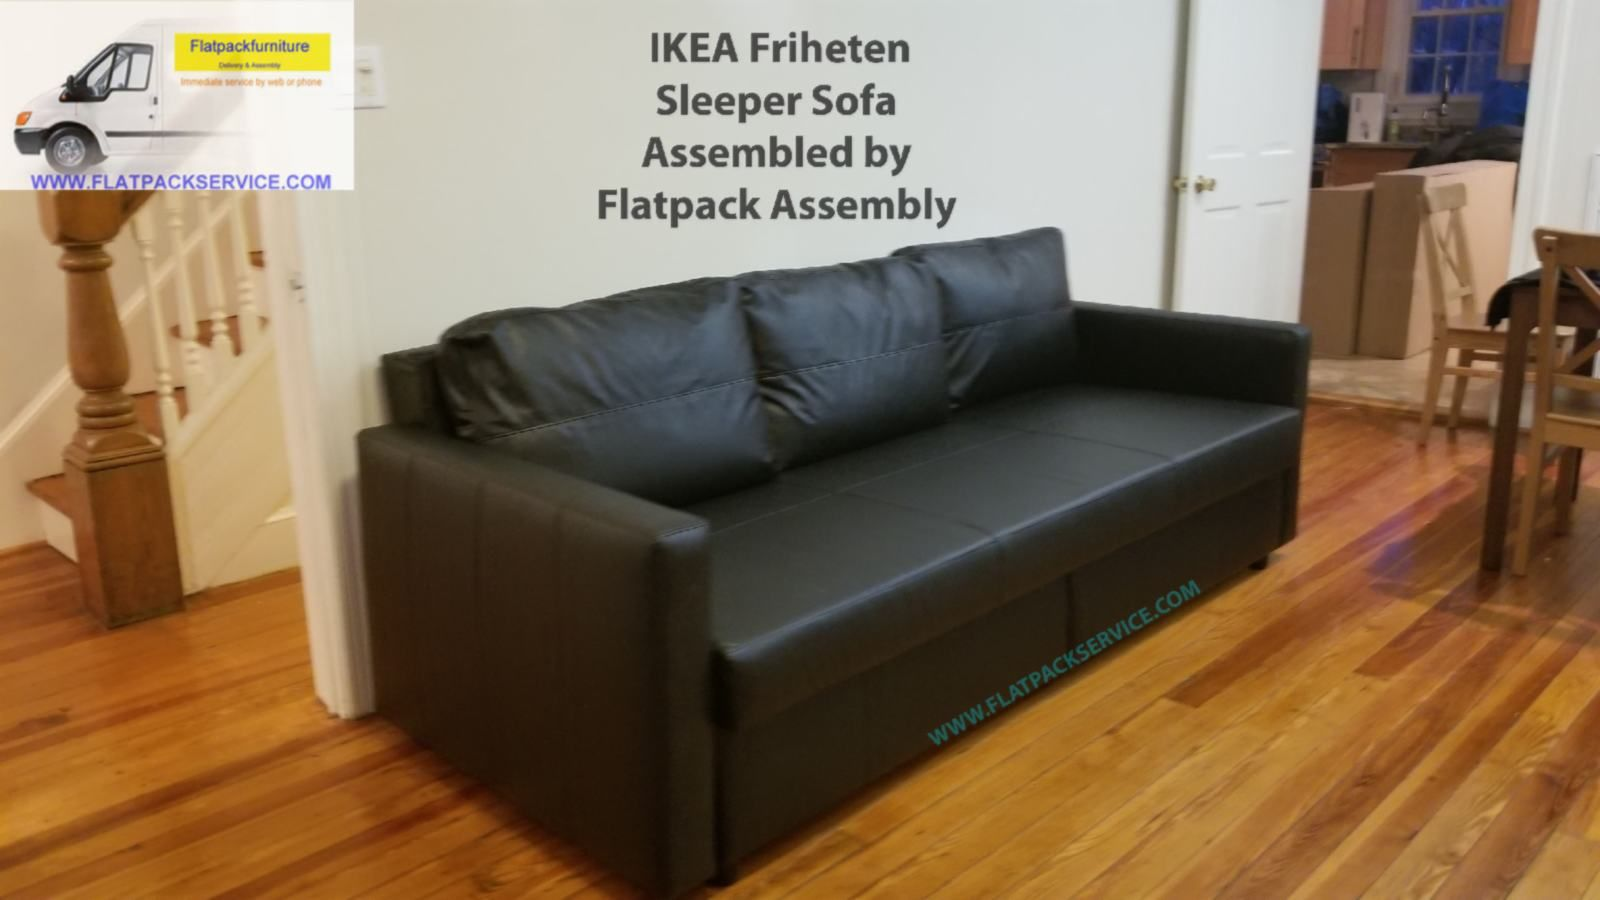 Flatpack Assembly Service Furniture Assembly 202 277 5911 Top 10